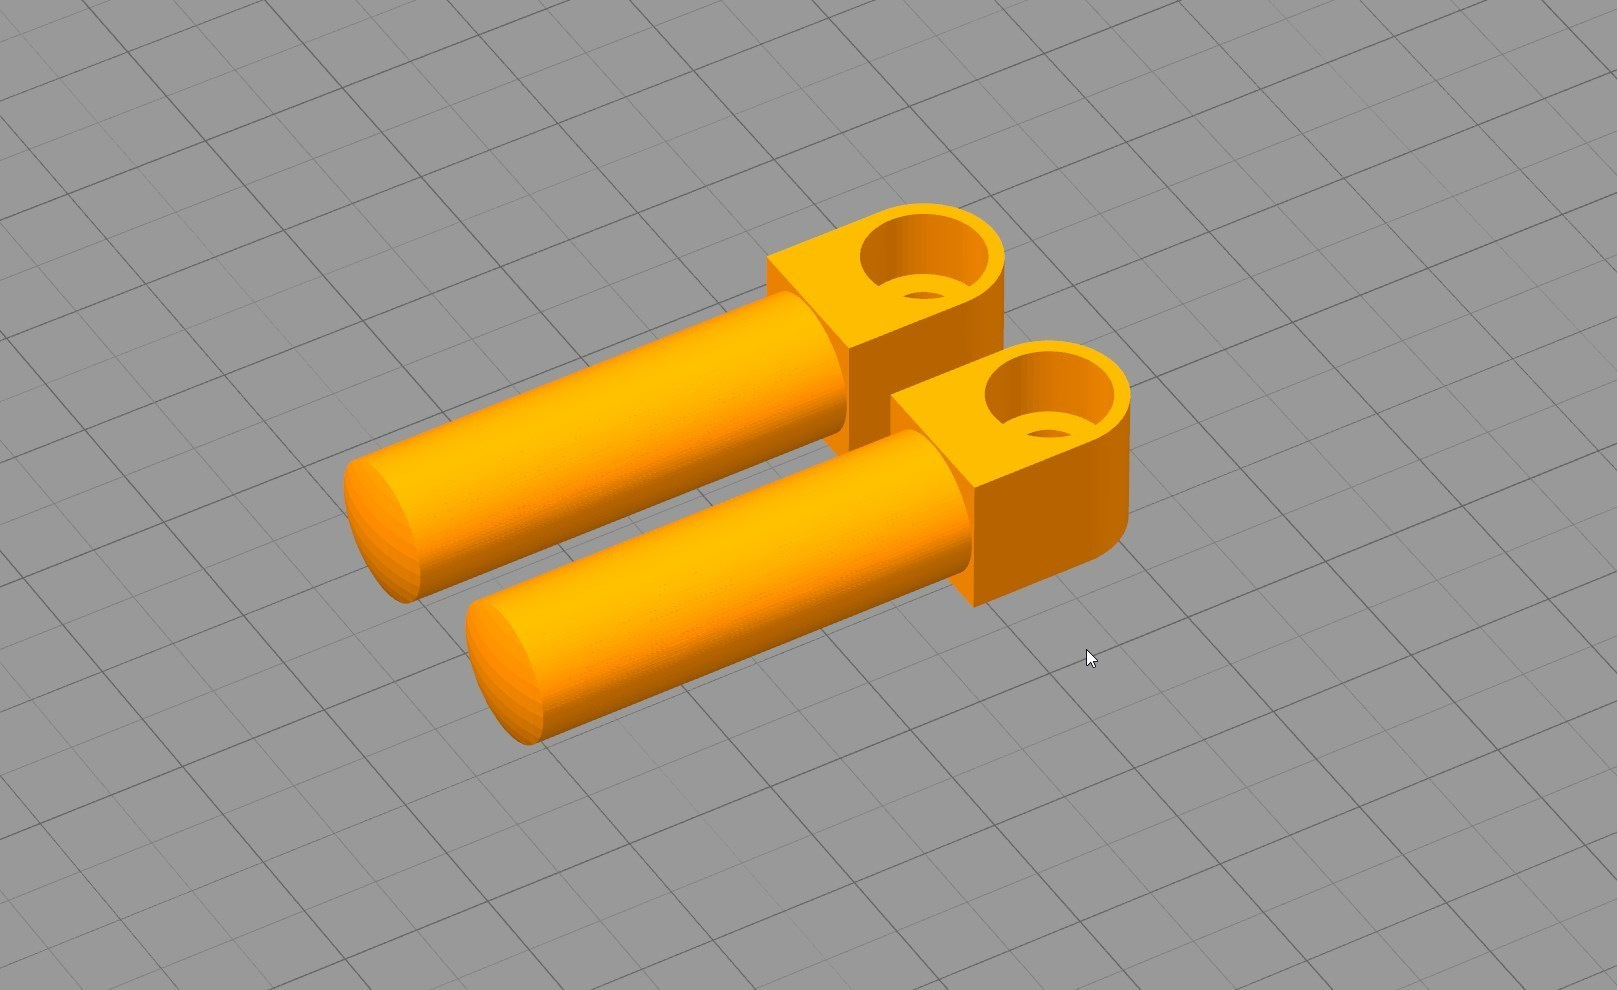 Simplify3D_2018-08-08_15-07-44.jpg Download free STL file stand rouleau WC remix • 3D printing model, Cyborg